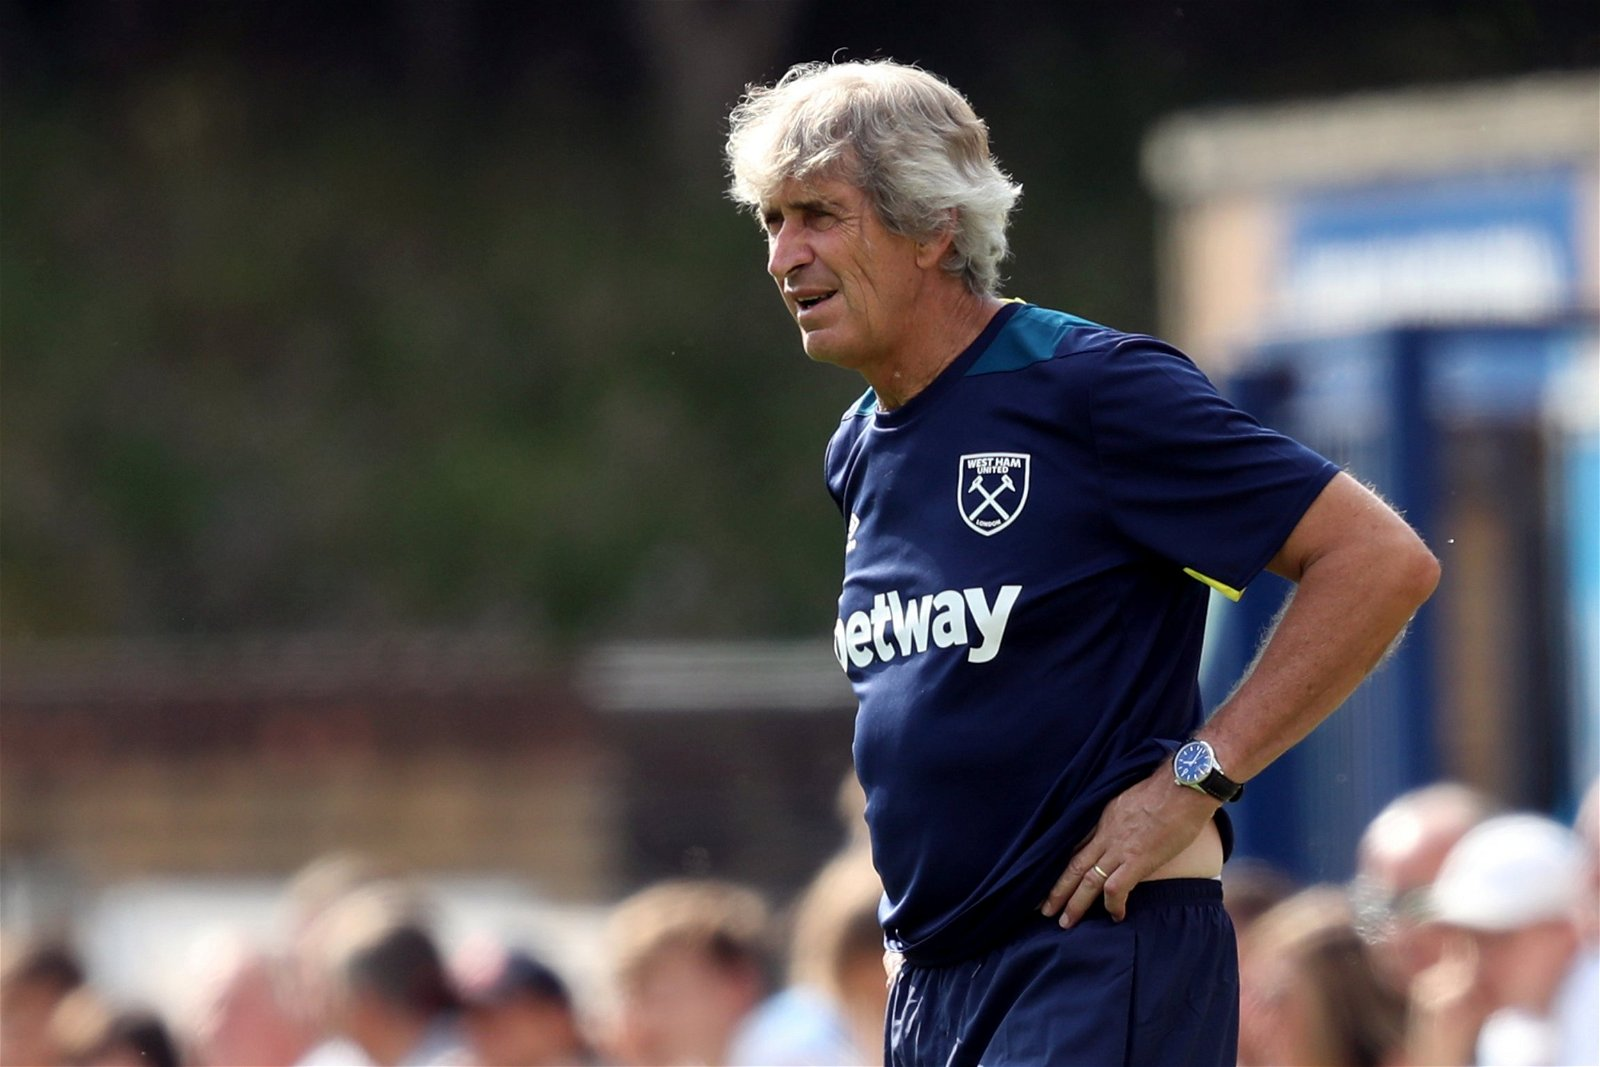 Manuel Pellegrini watches from the touchline as West Ham United face Wycombe Wanderers